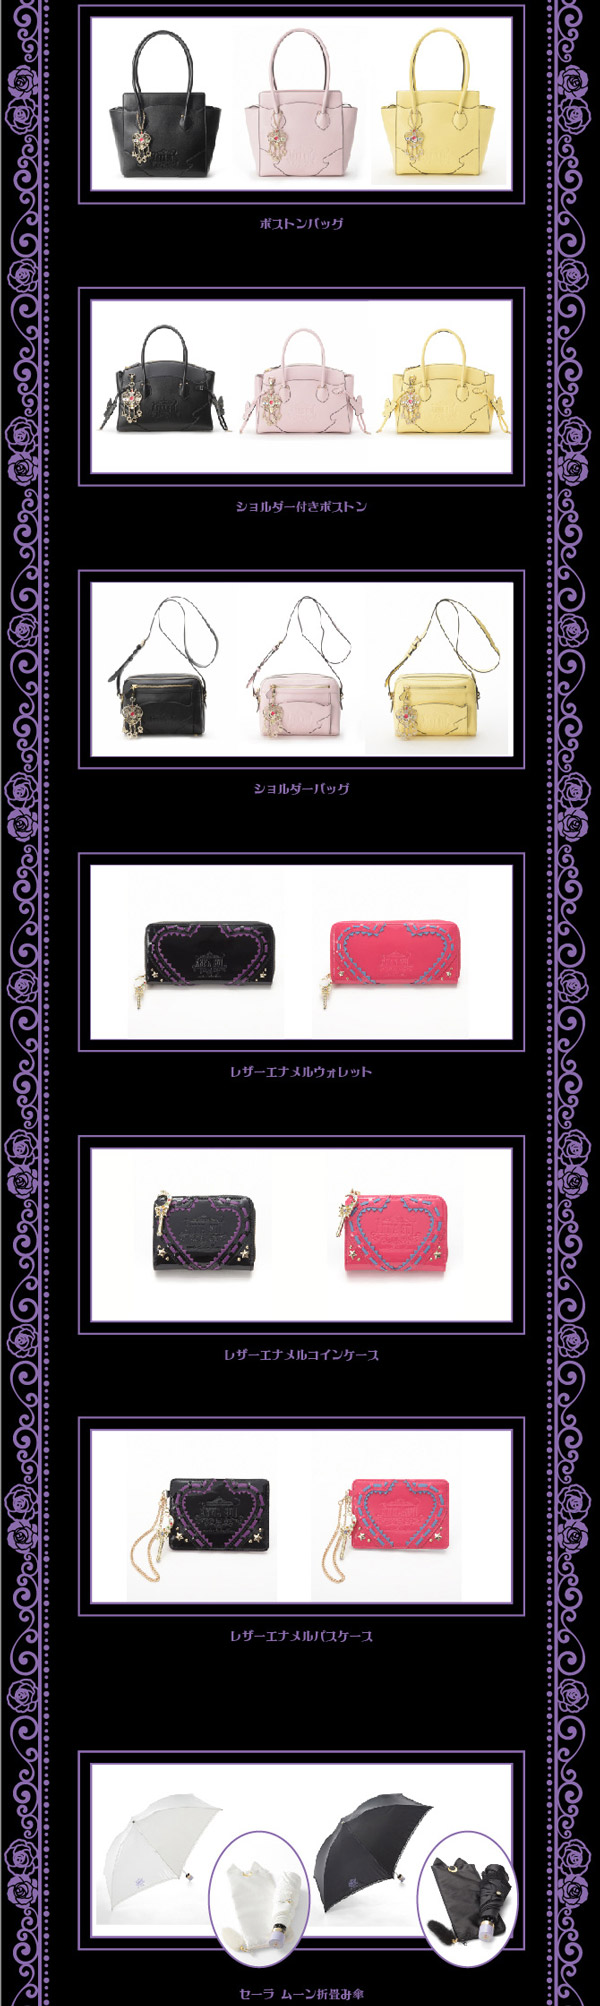 sailormoon-anna-sui-isetan-collaboration-jewelry-bags2016a1sm